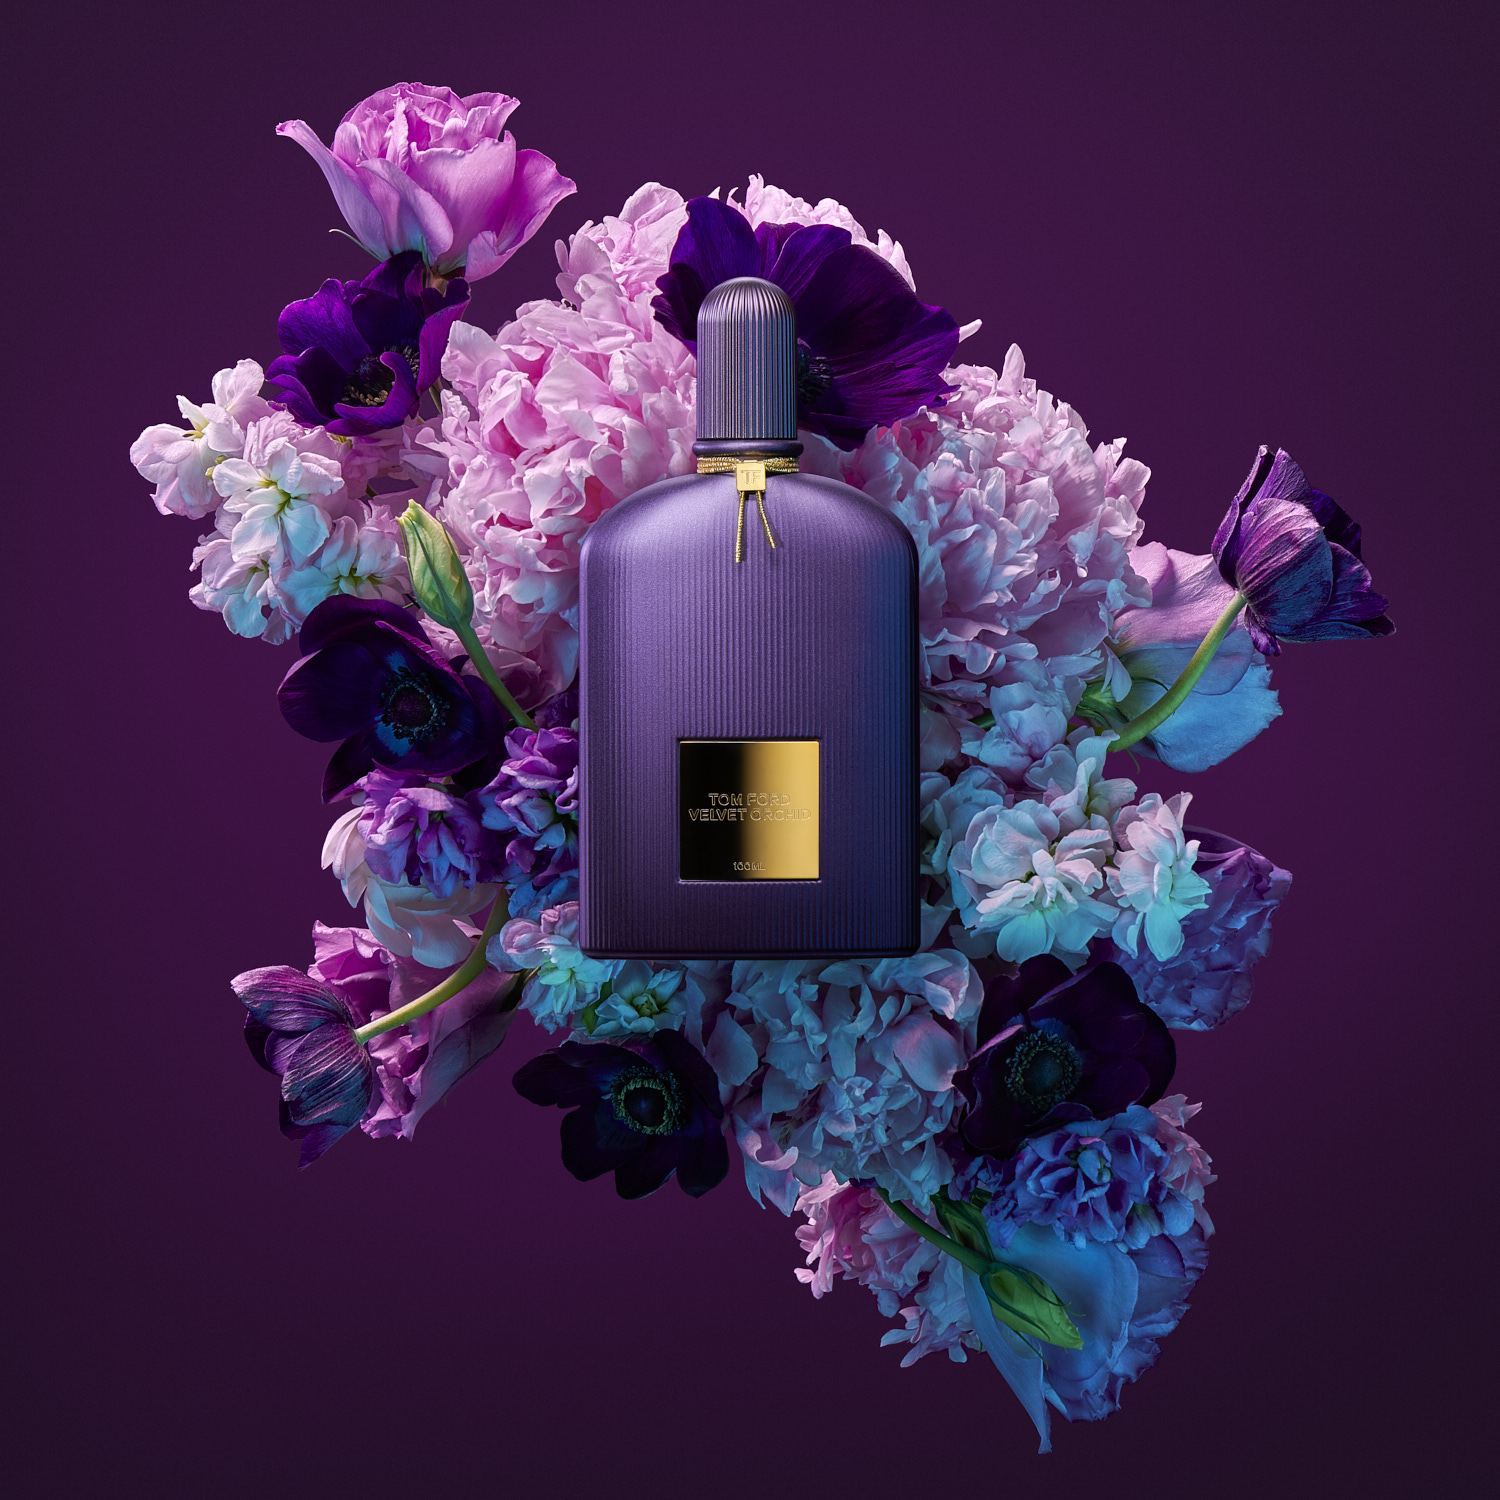 Tom Ford Perfume orchid stylist for Tom Ford based in Los Angeles California